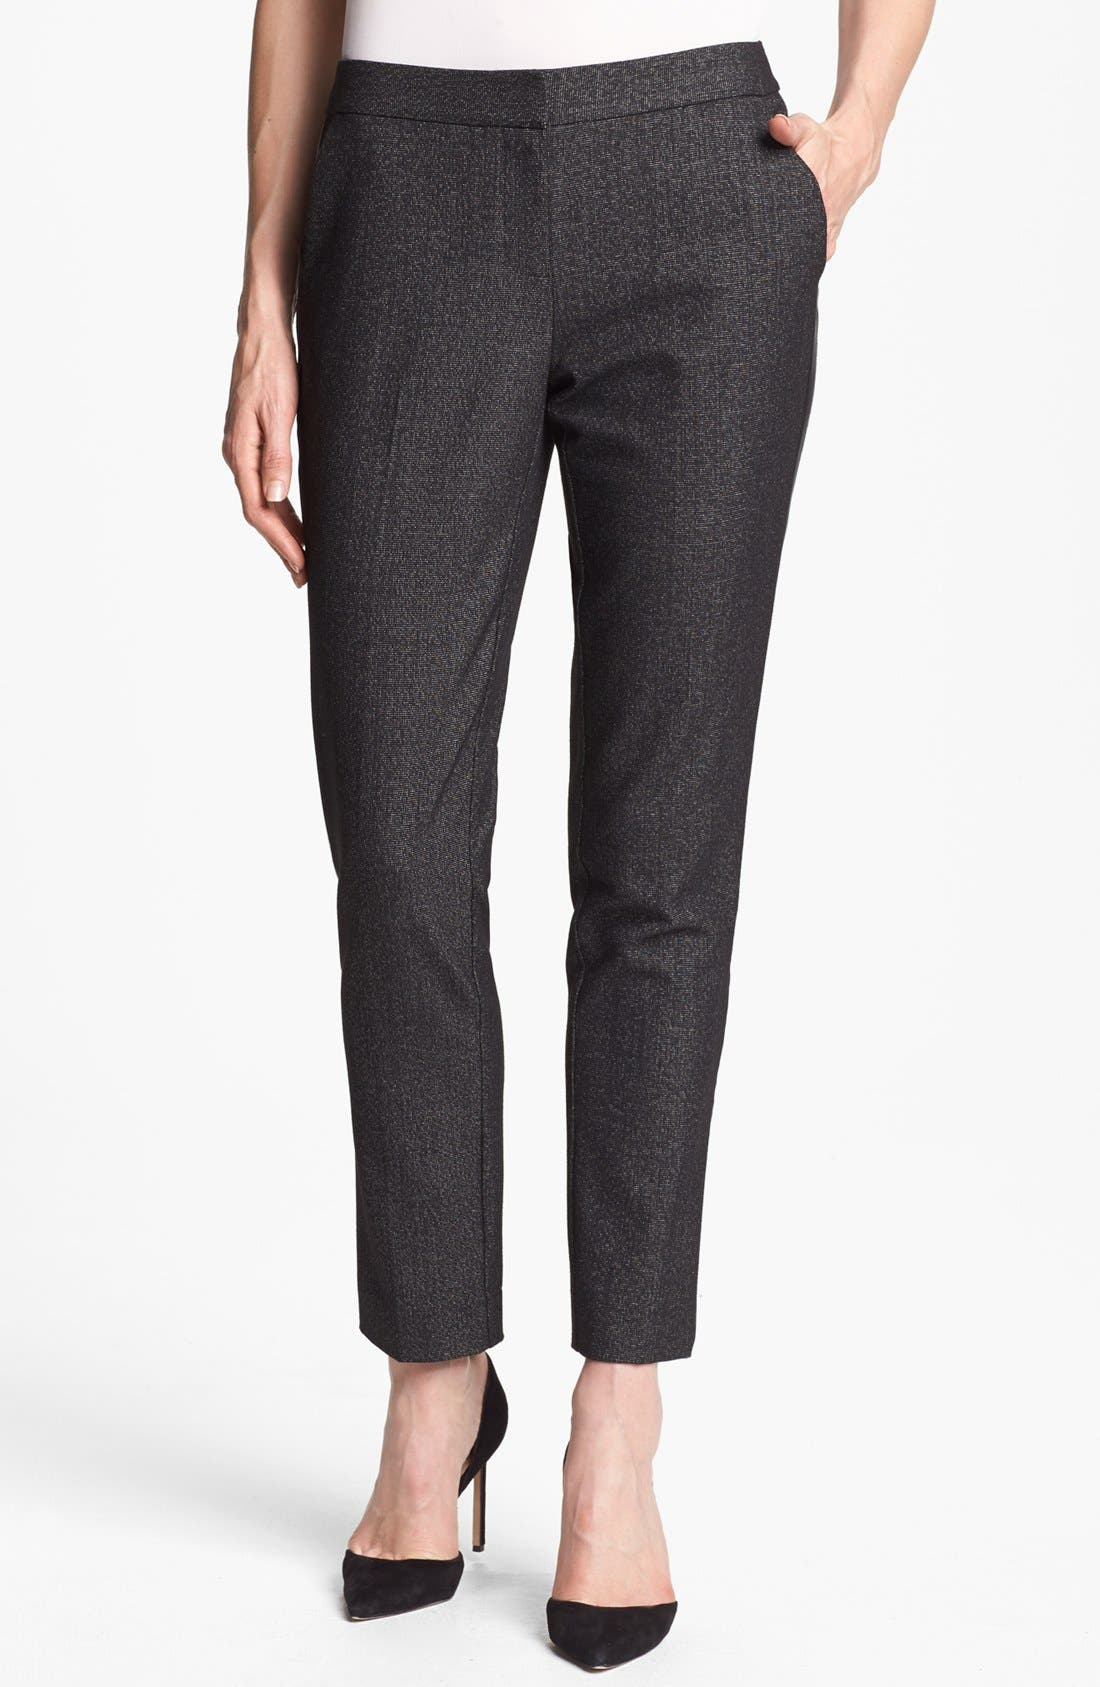 Main Image - Vince Camuto Faux Leather Tuxedo Stripe Pants (Petite)